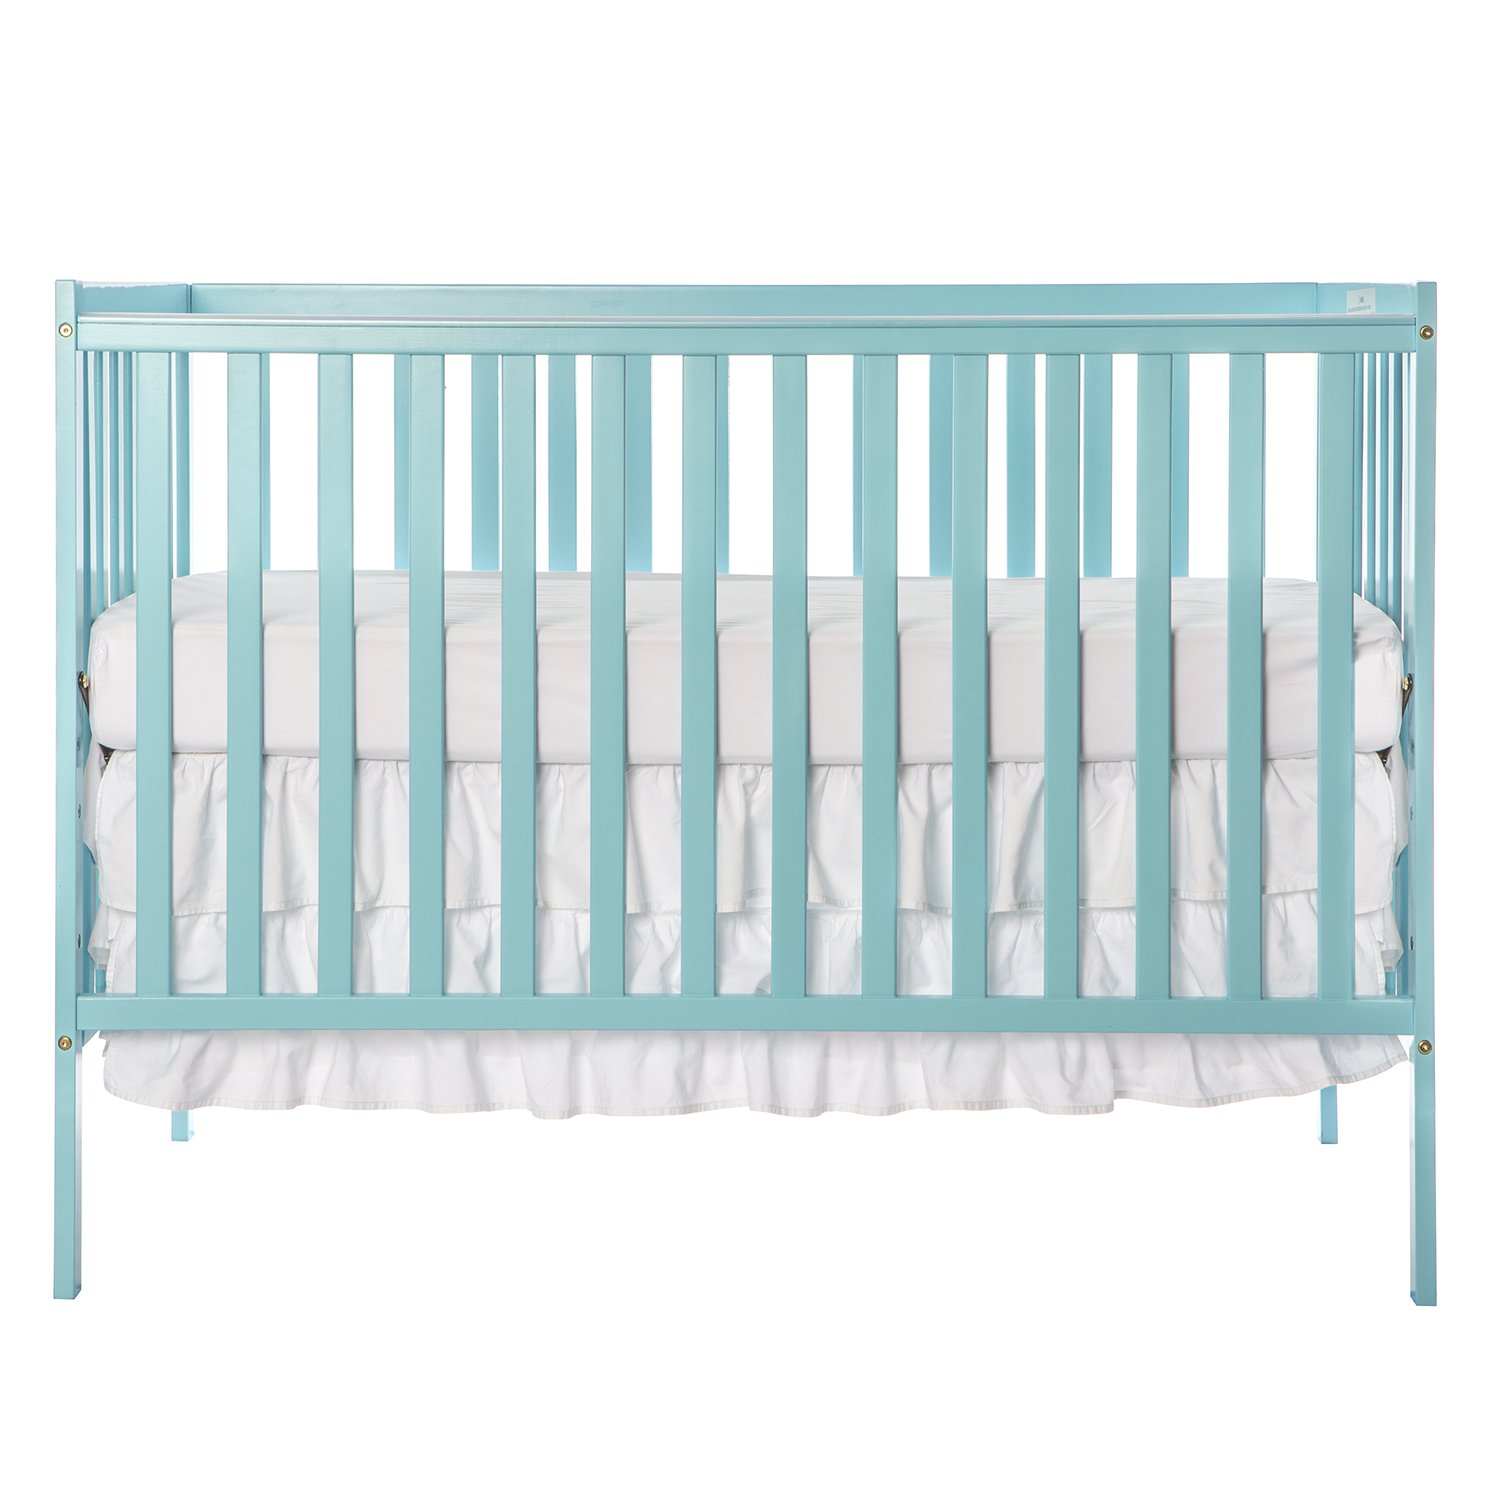 Amazon.com : Dream On Me Synergy 5 In 1 Convertible, Crib, Aqua Sky : Baby